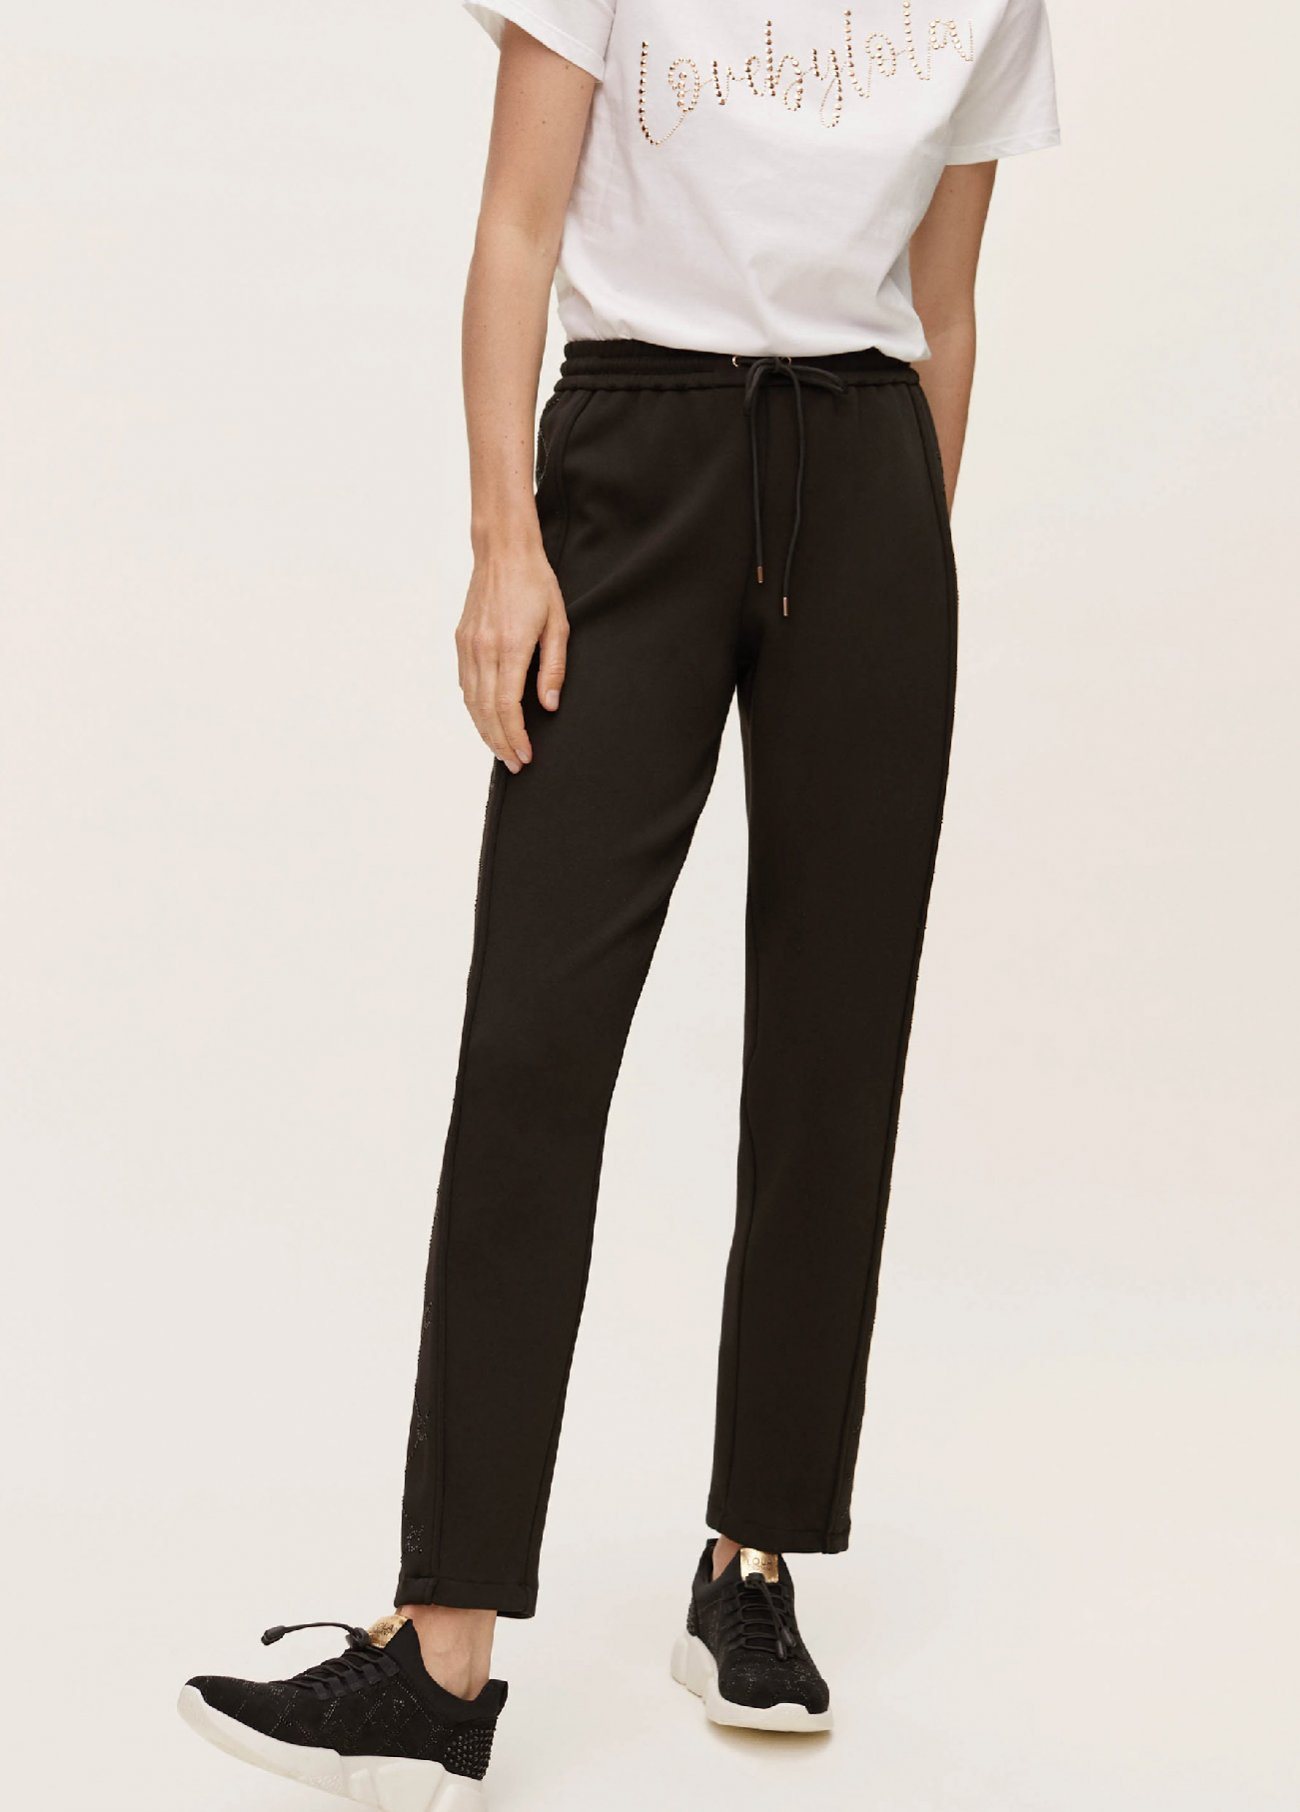 Jogging pant with metallic print on side